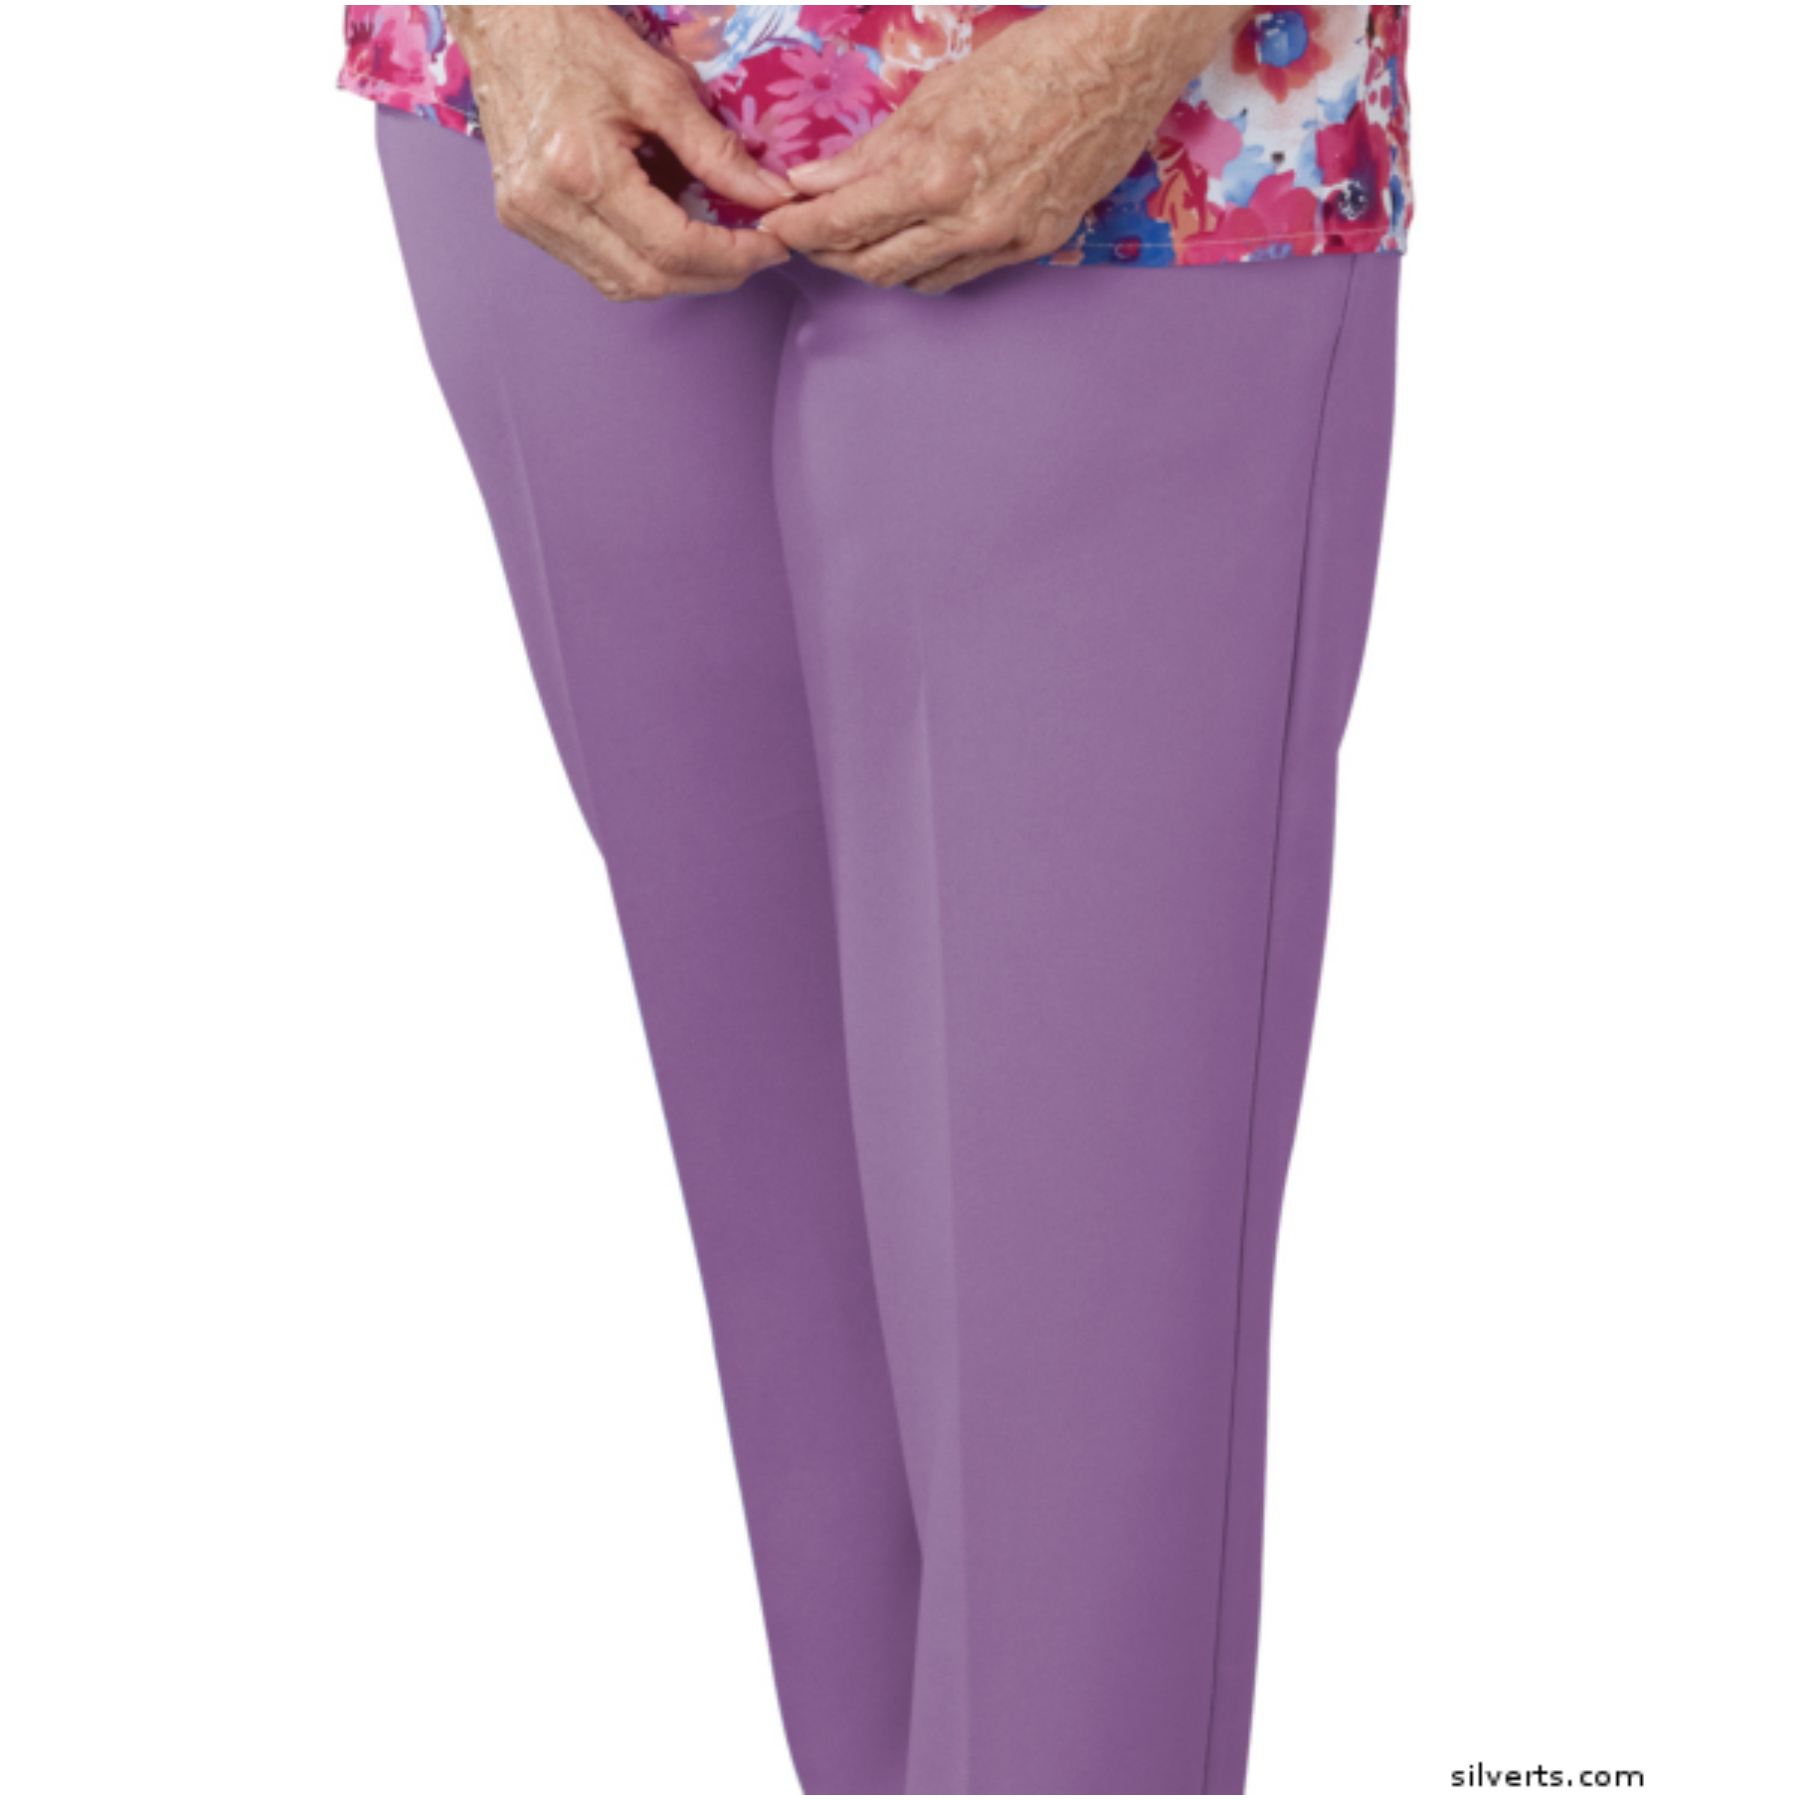 womens exercise pants with pockets photo - 2